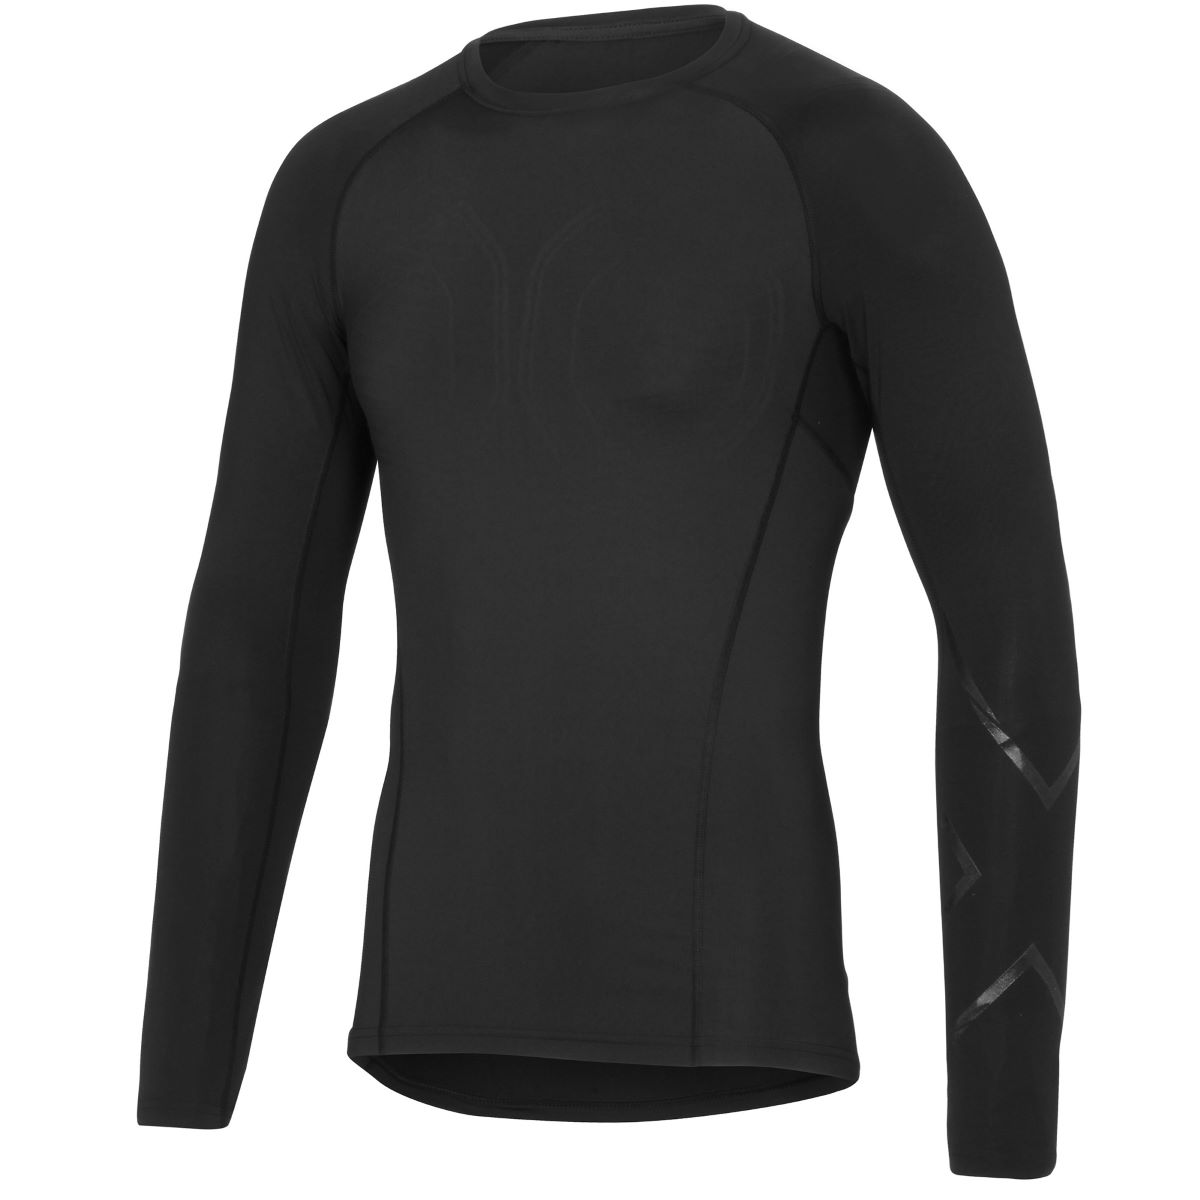 Maillot à compression 2XU MCS Cross Training - XL Black/Nero